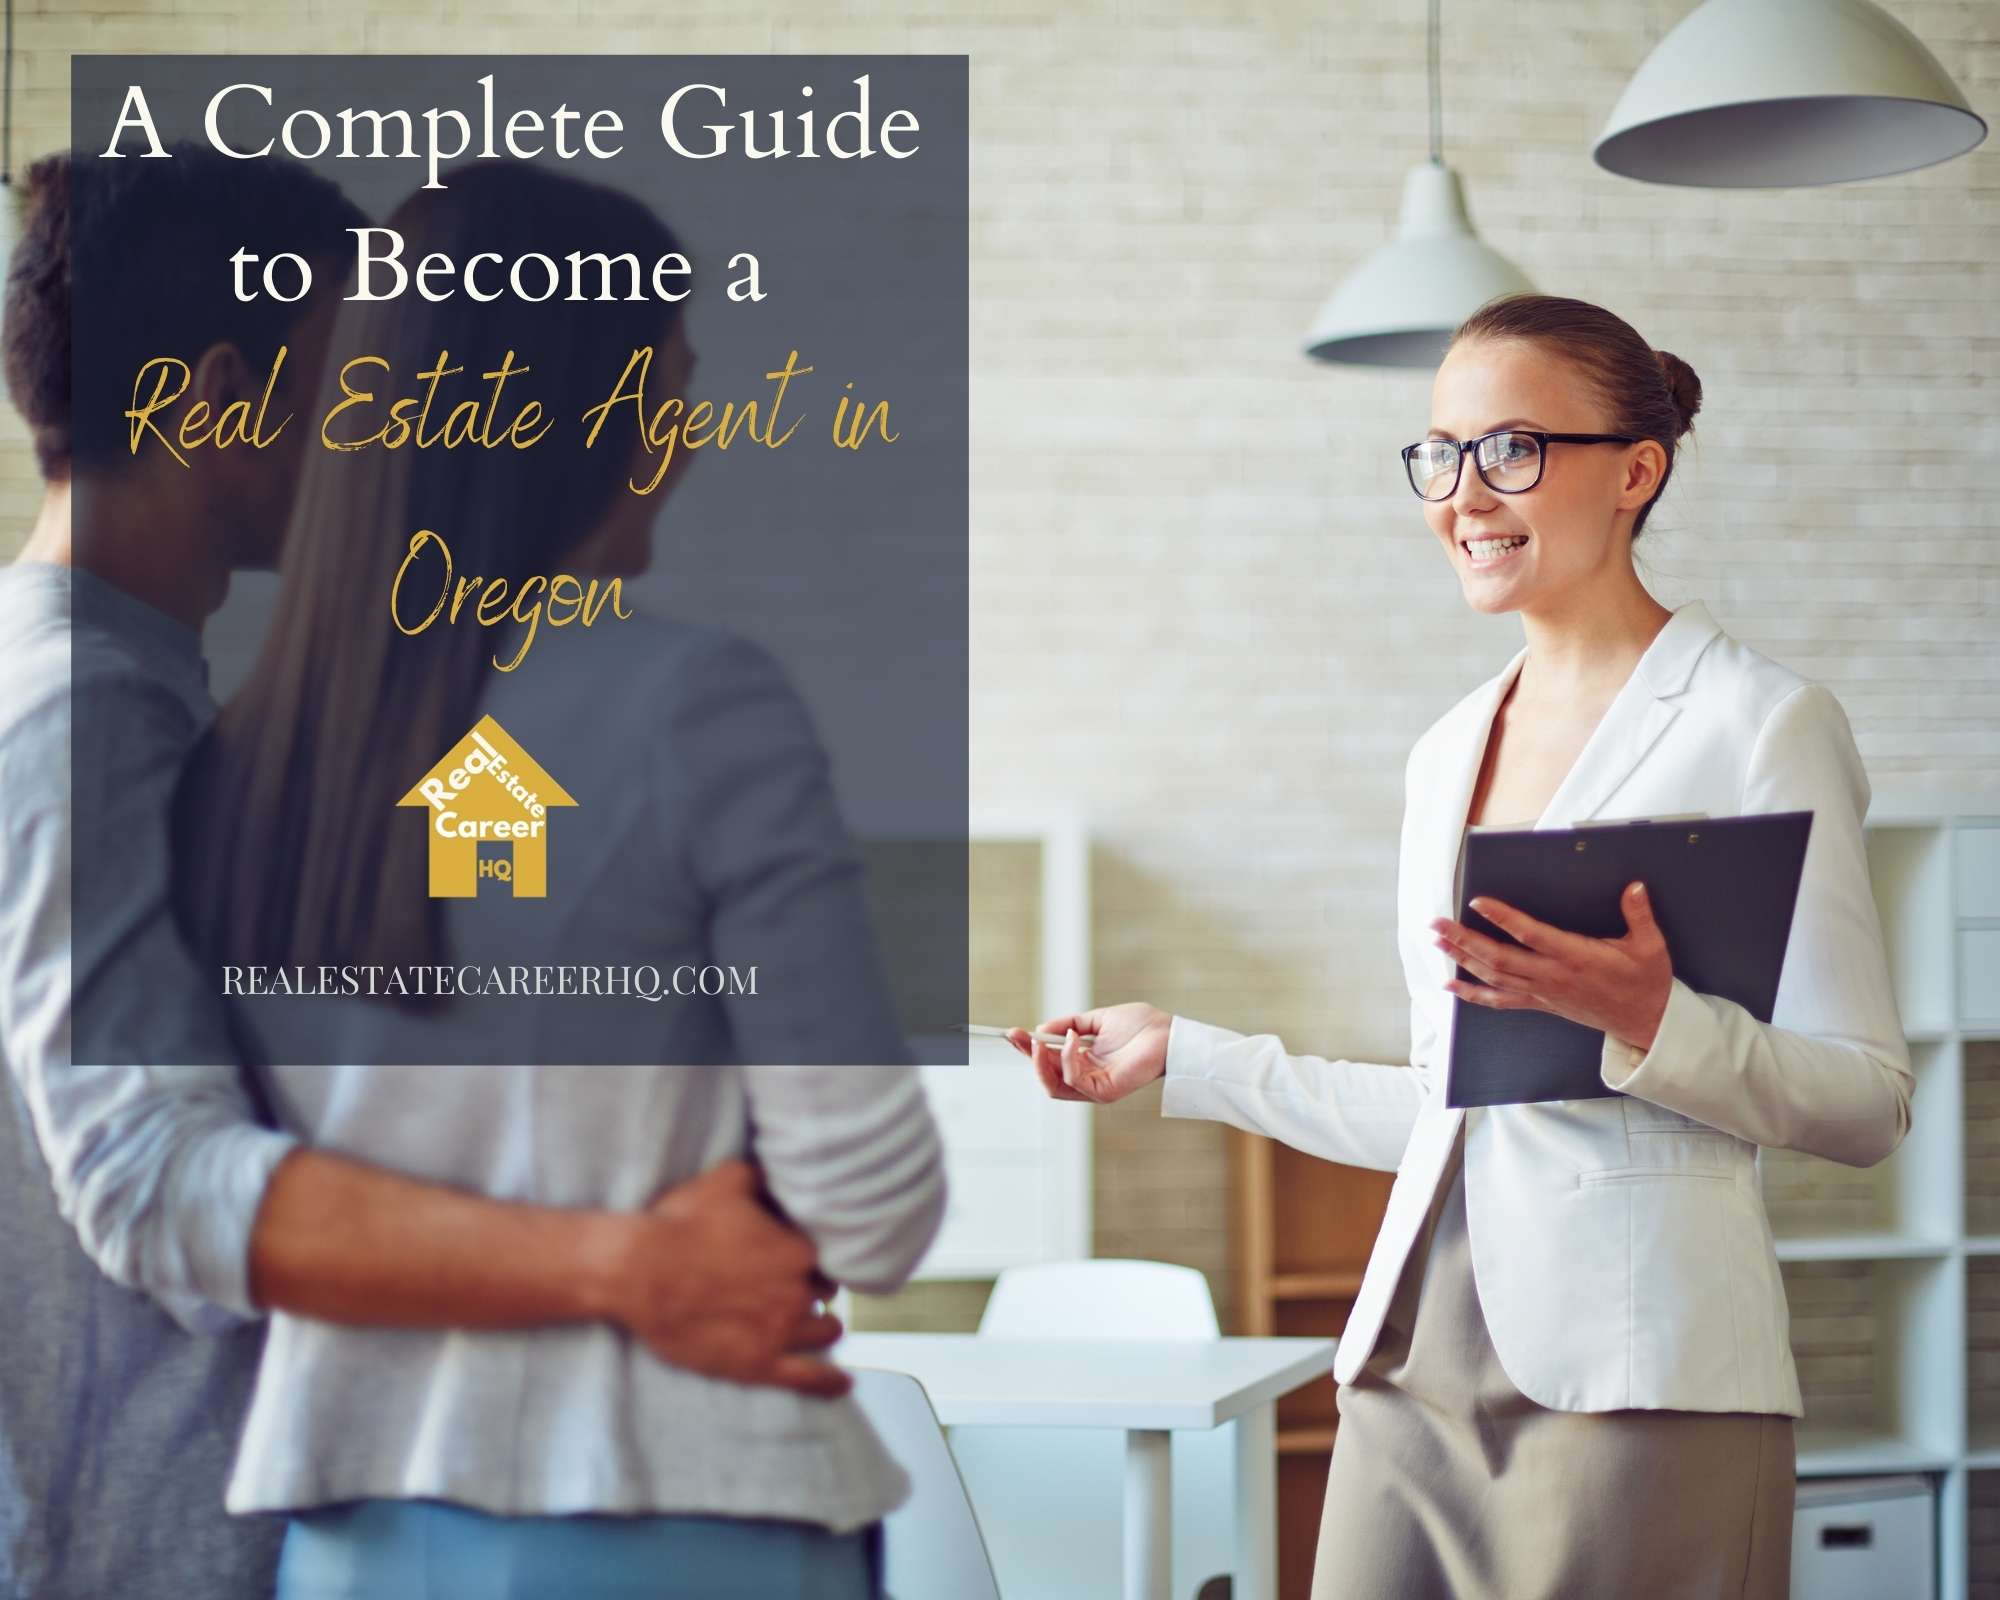 How to become a Real Estate Agent in Oregon?